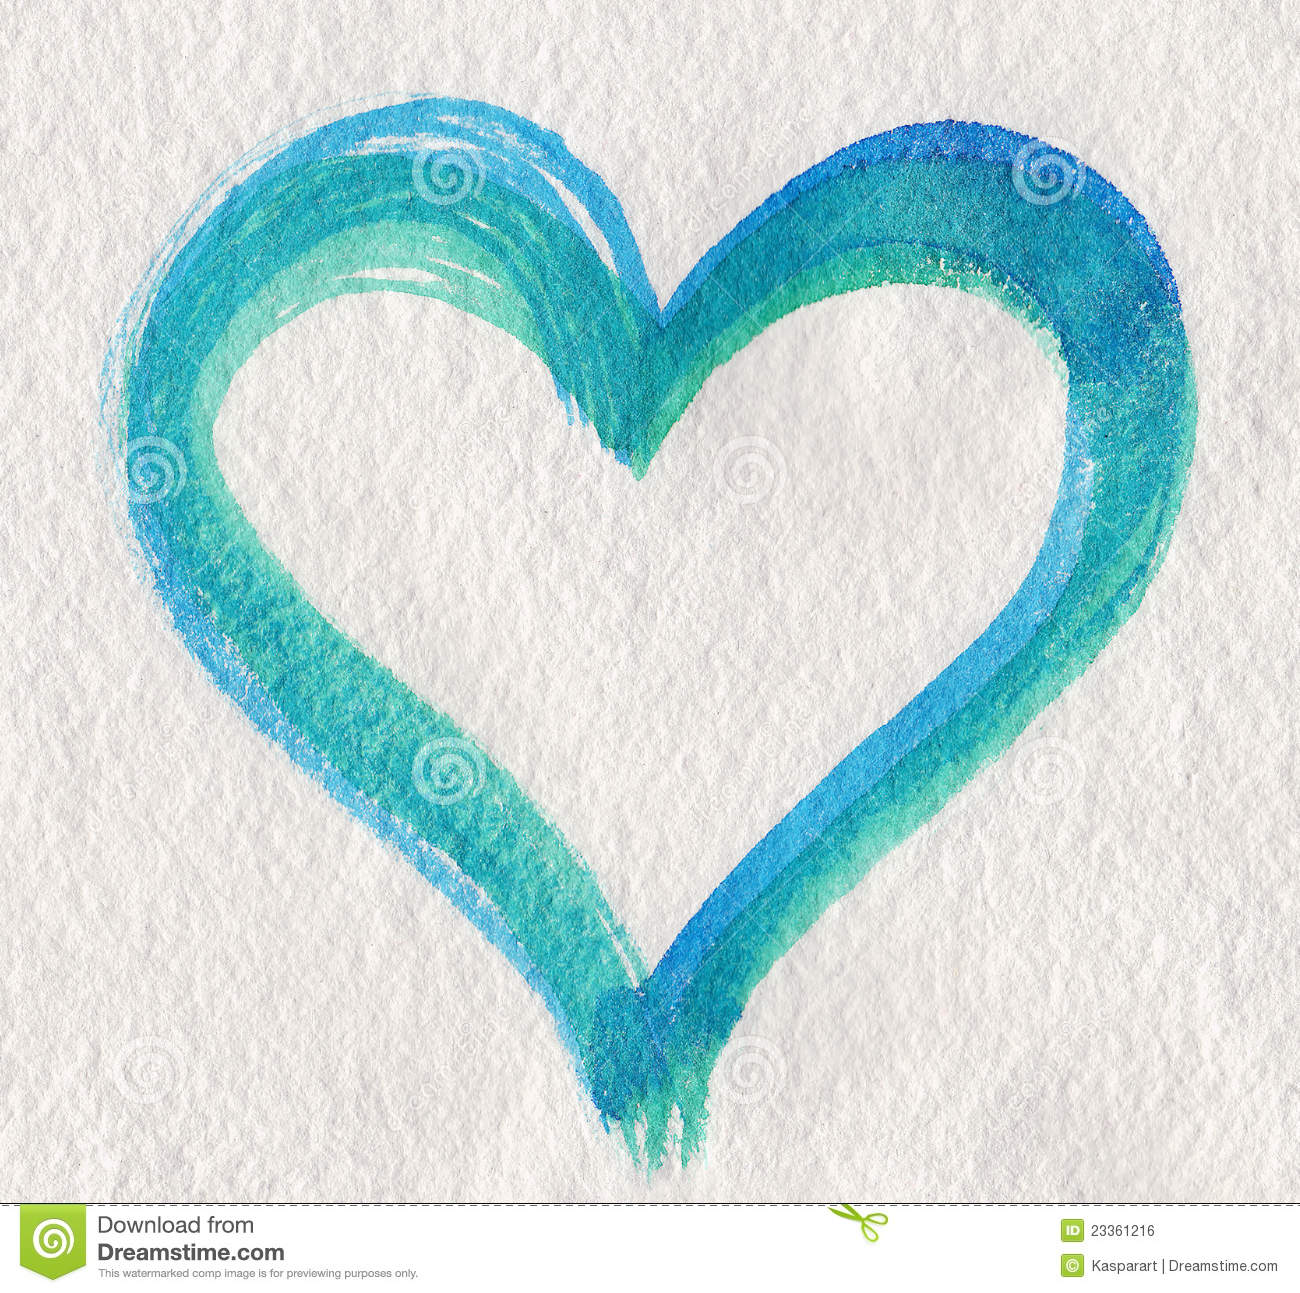 Blue Green Heart Shape Royalty Free Stock Image - Image: 23361216